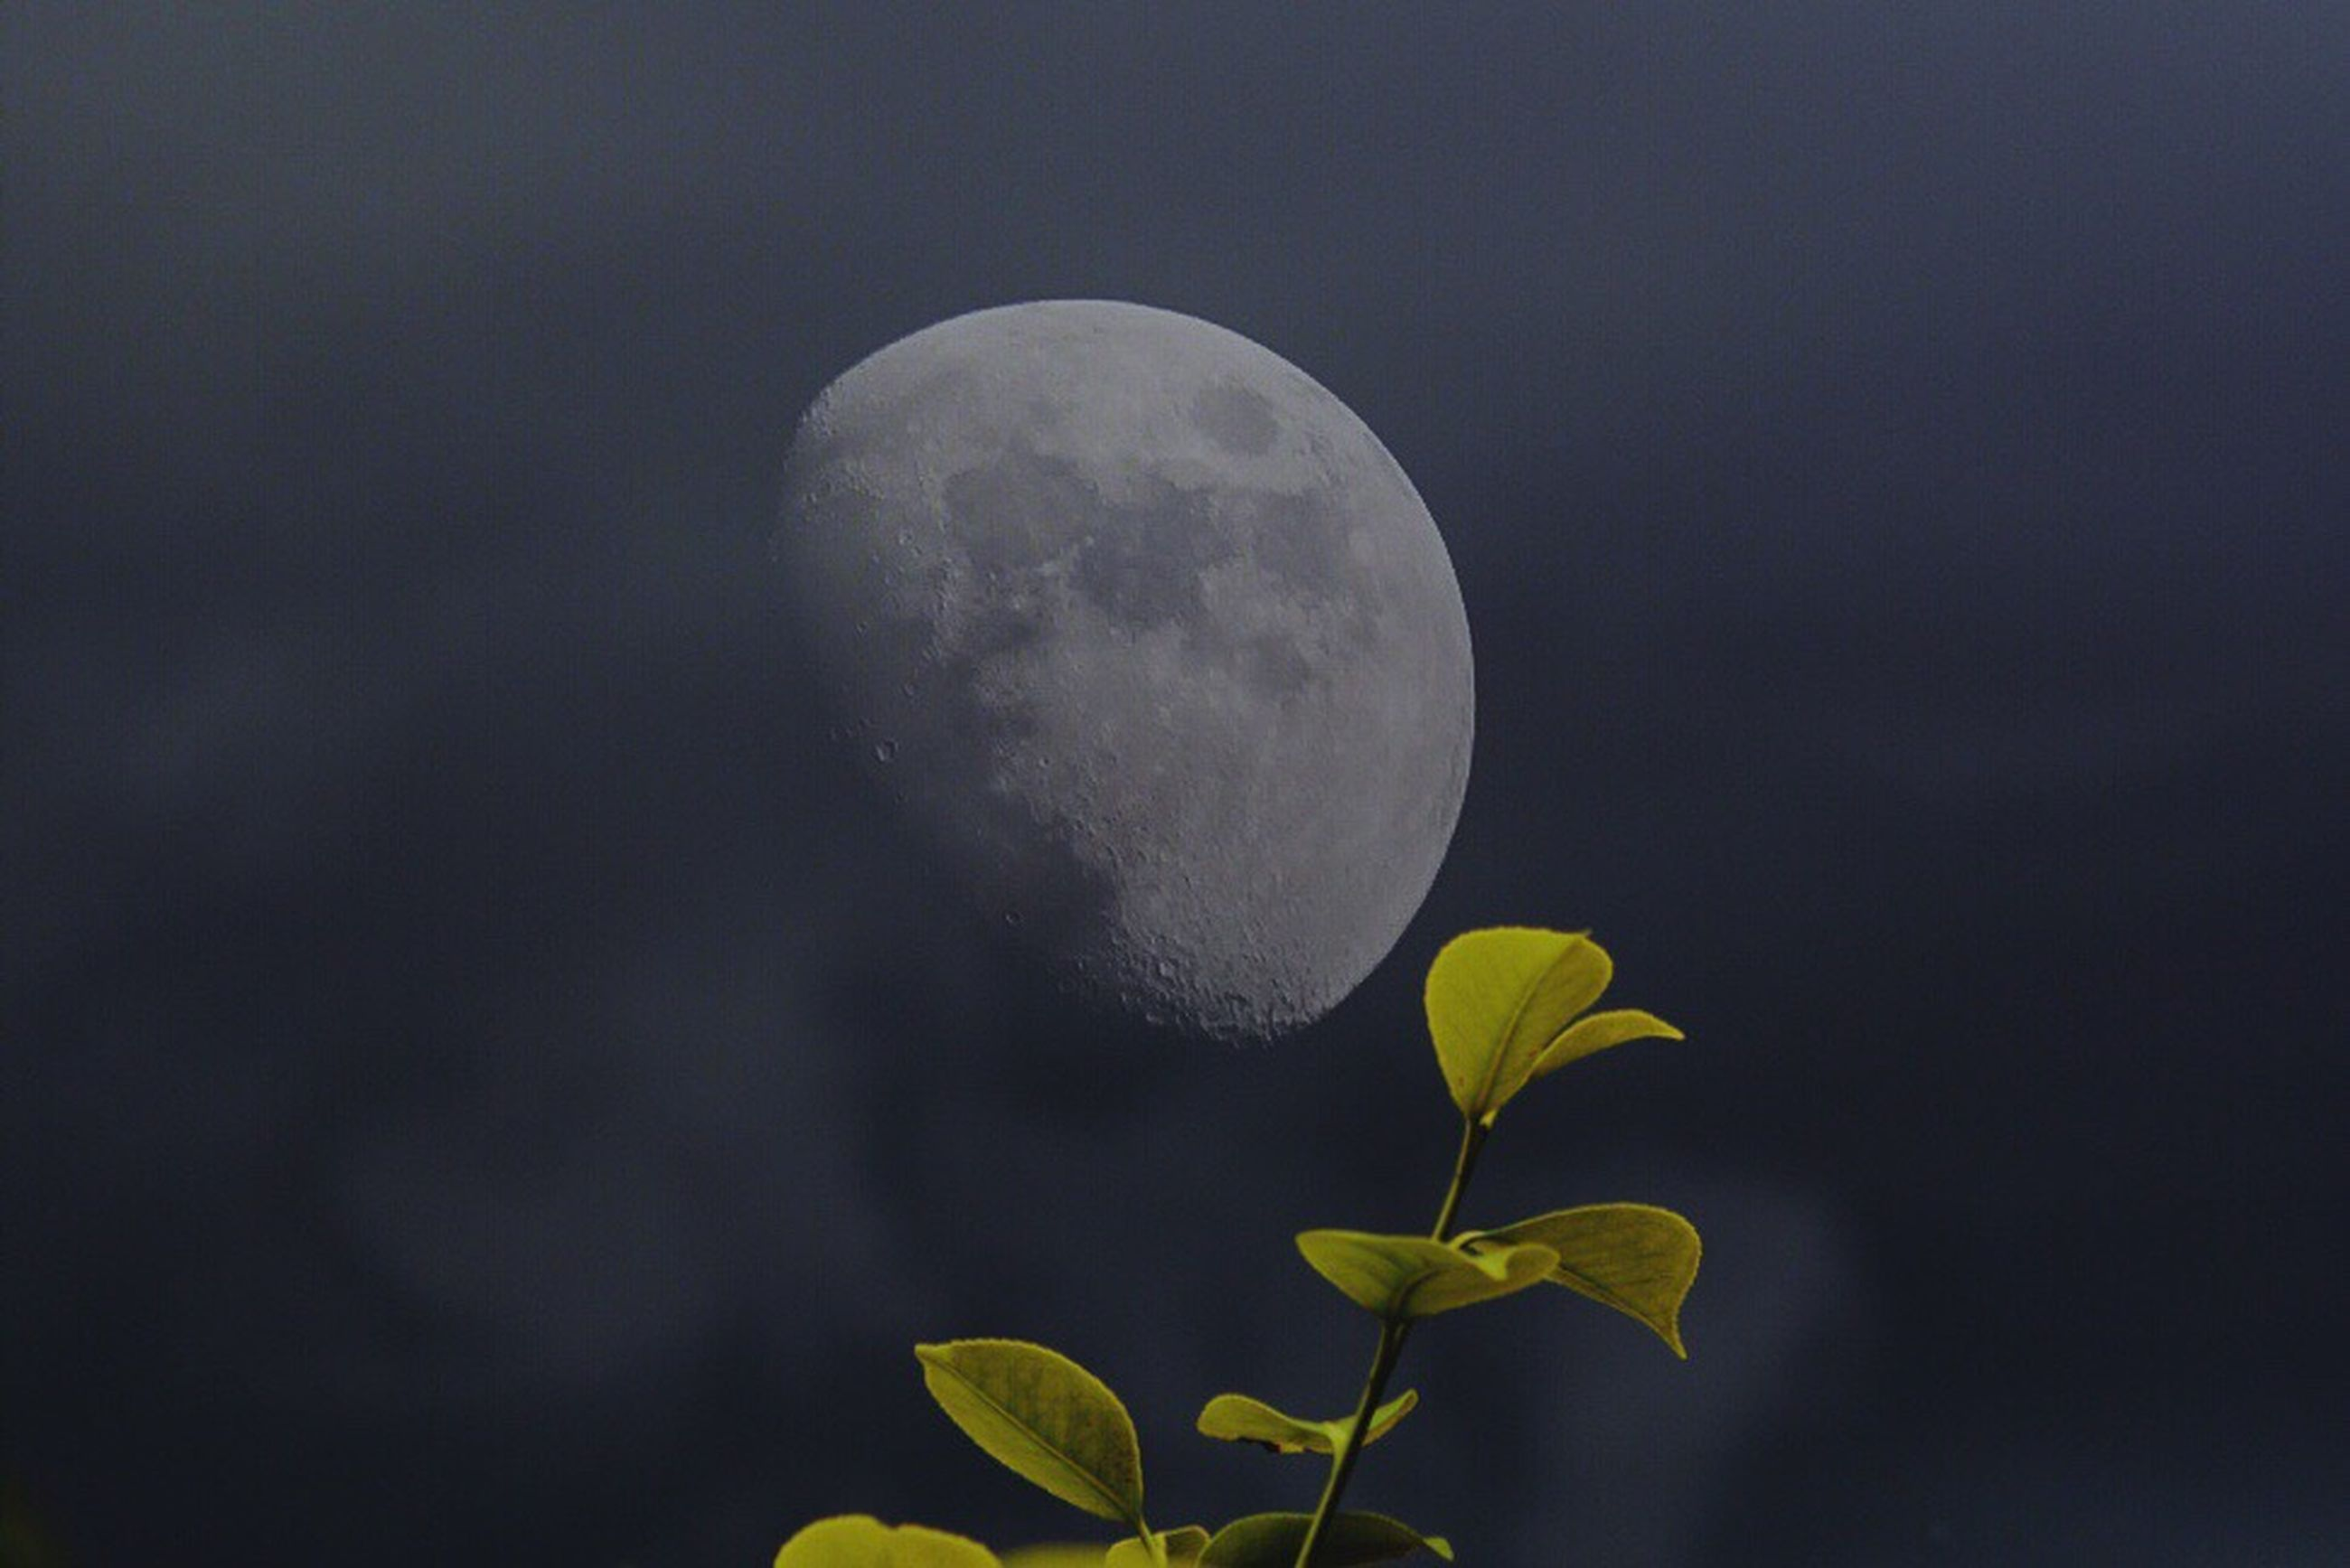 nature, beauty in nature, moon, night, growth, tranquility, outdoors, no people, plant, sky, flower, close-up, half moon, fragility, clear sky, astronomy, freshness